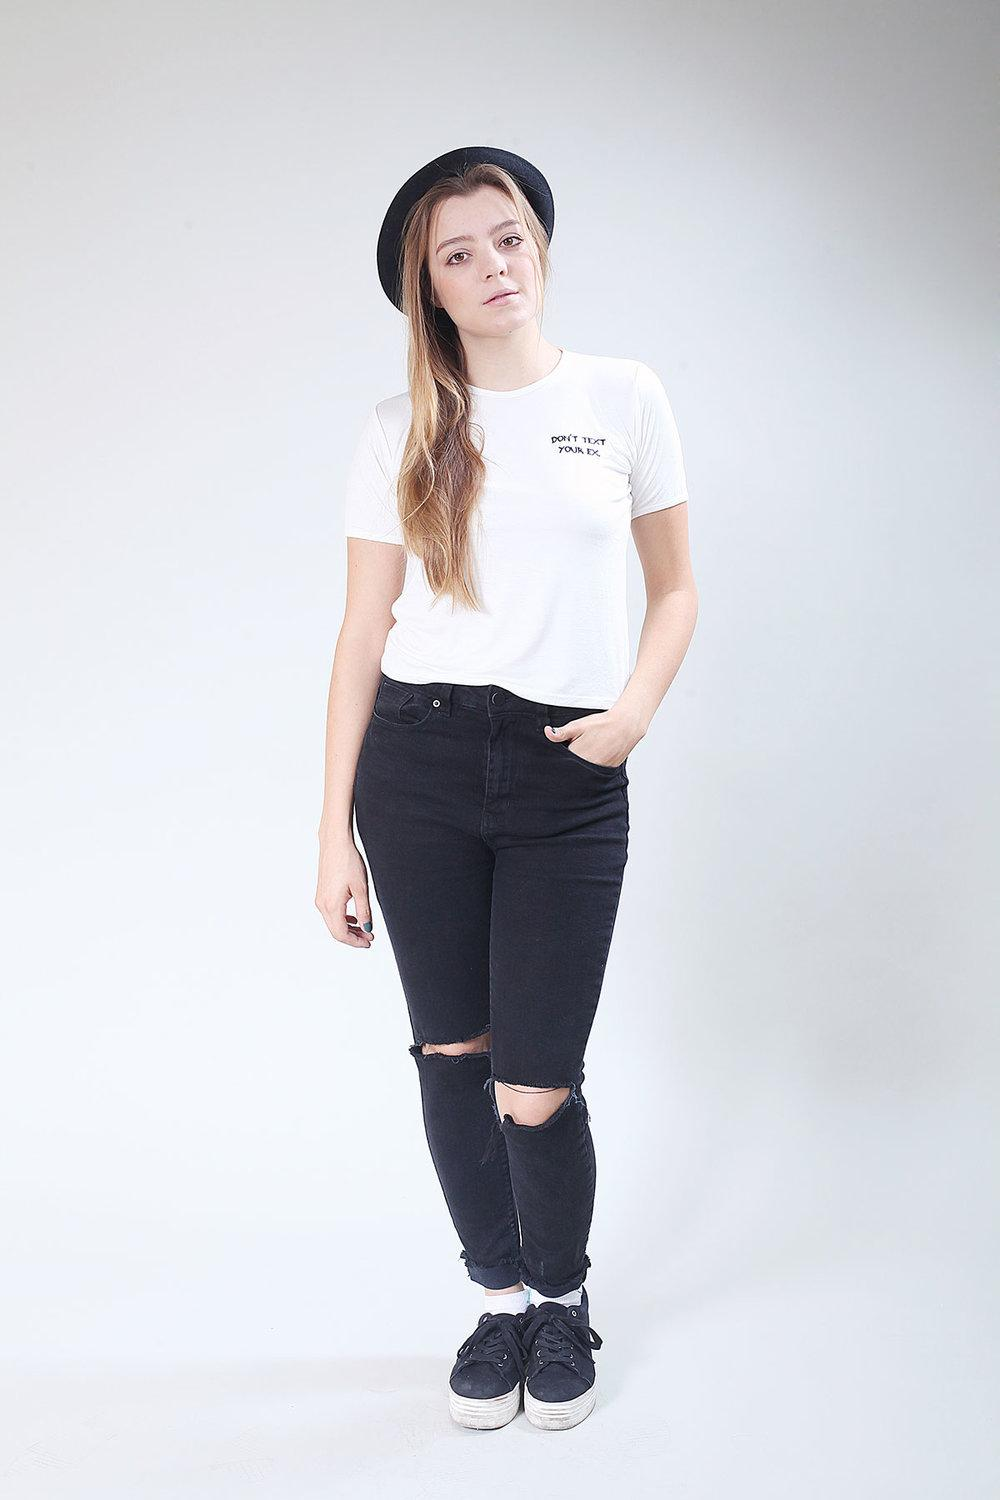 girl wearing jeans and white slogan t-shirt